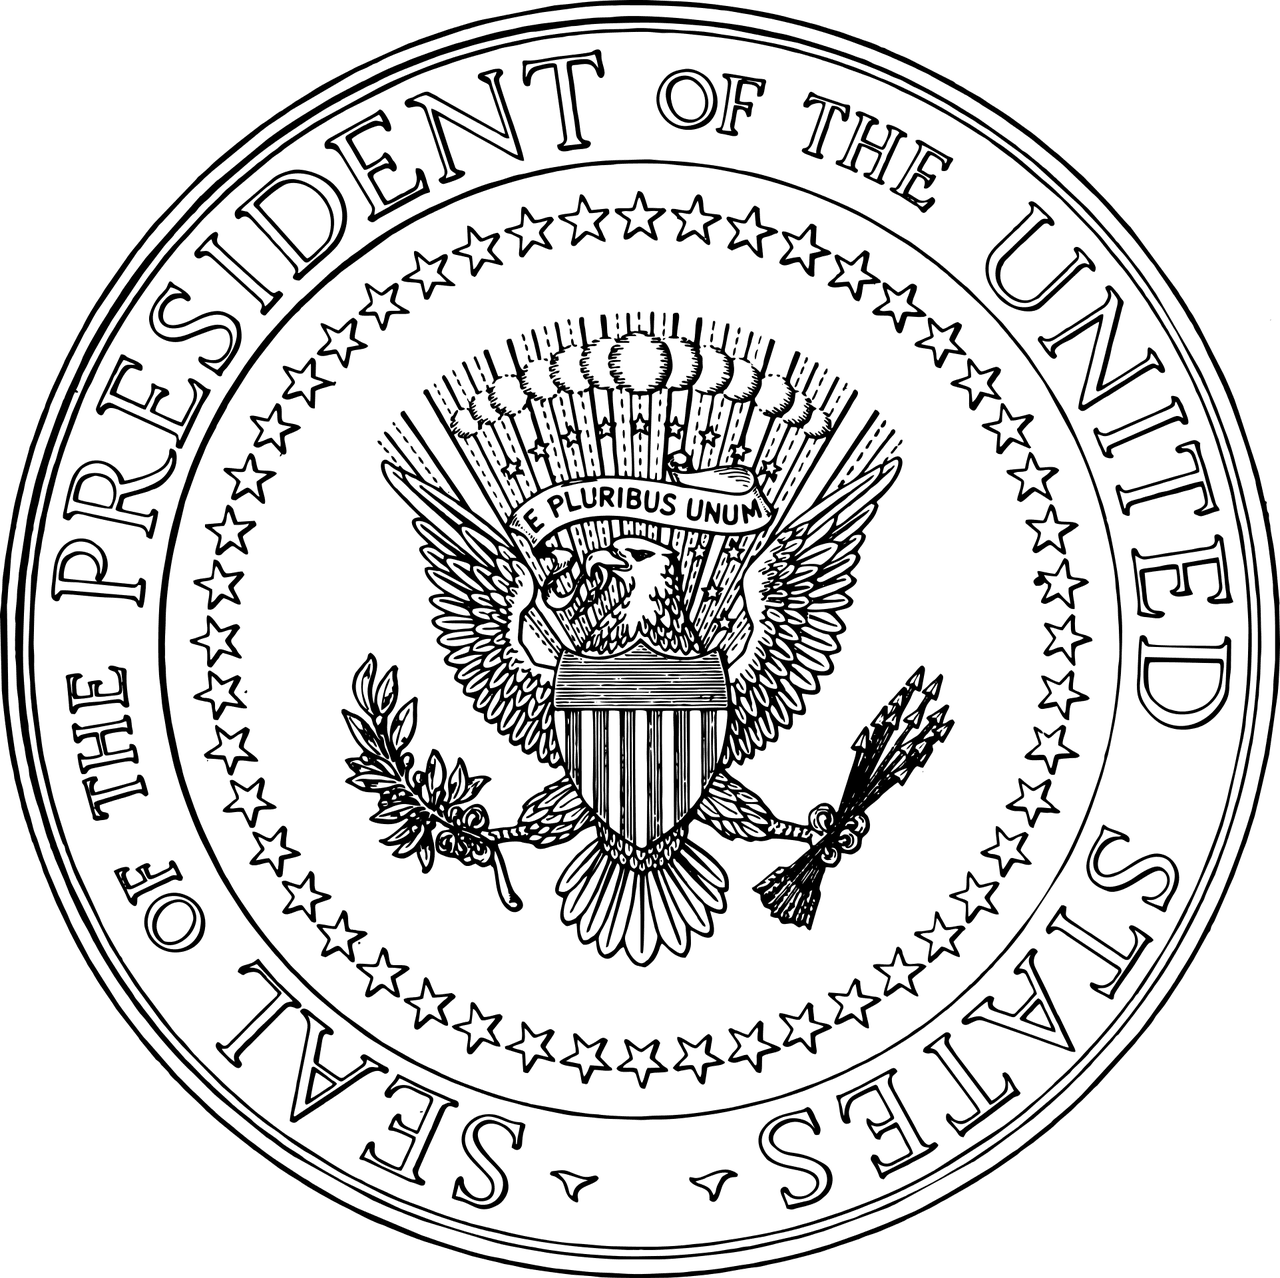 photoshopped presidential seal 45 is a puppet